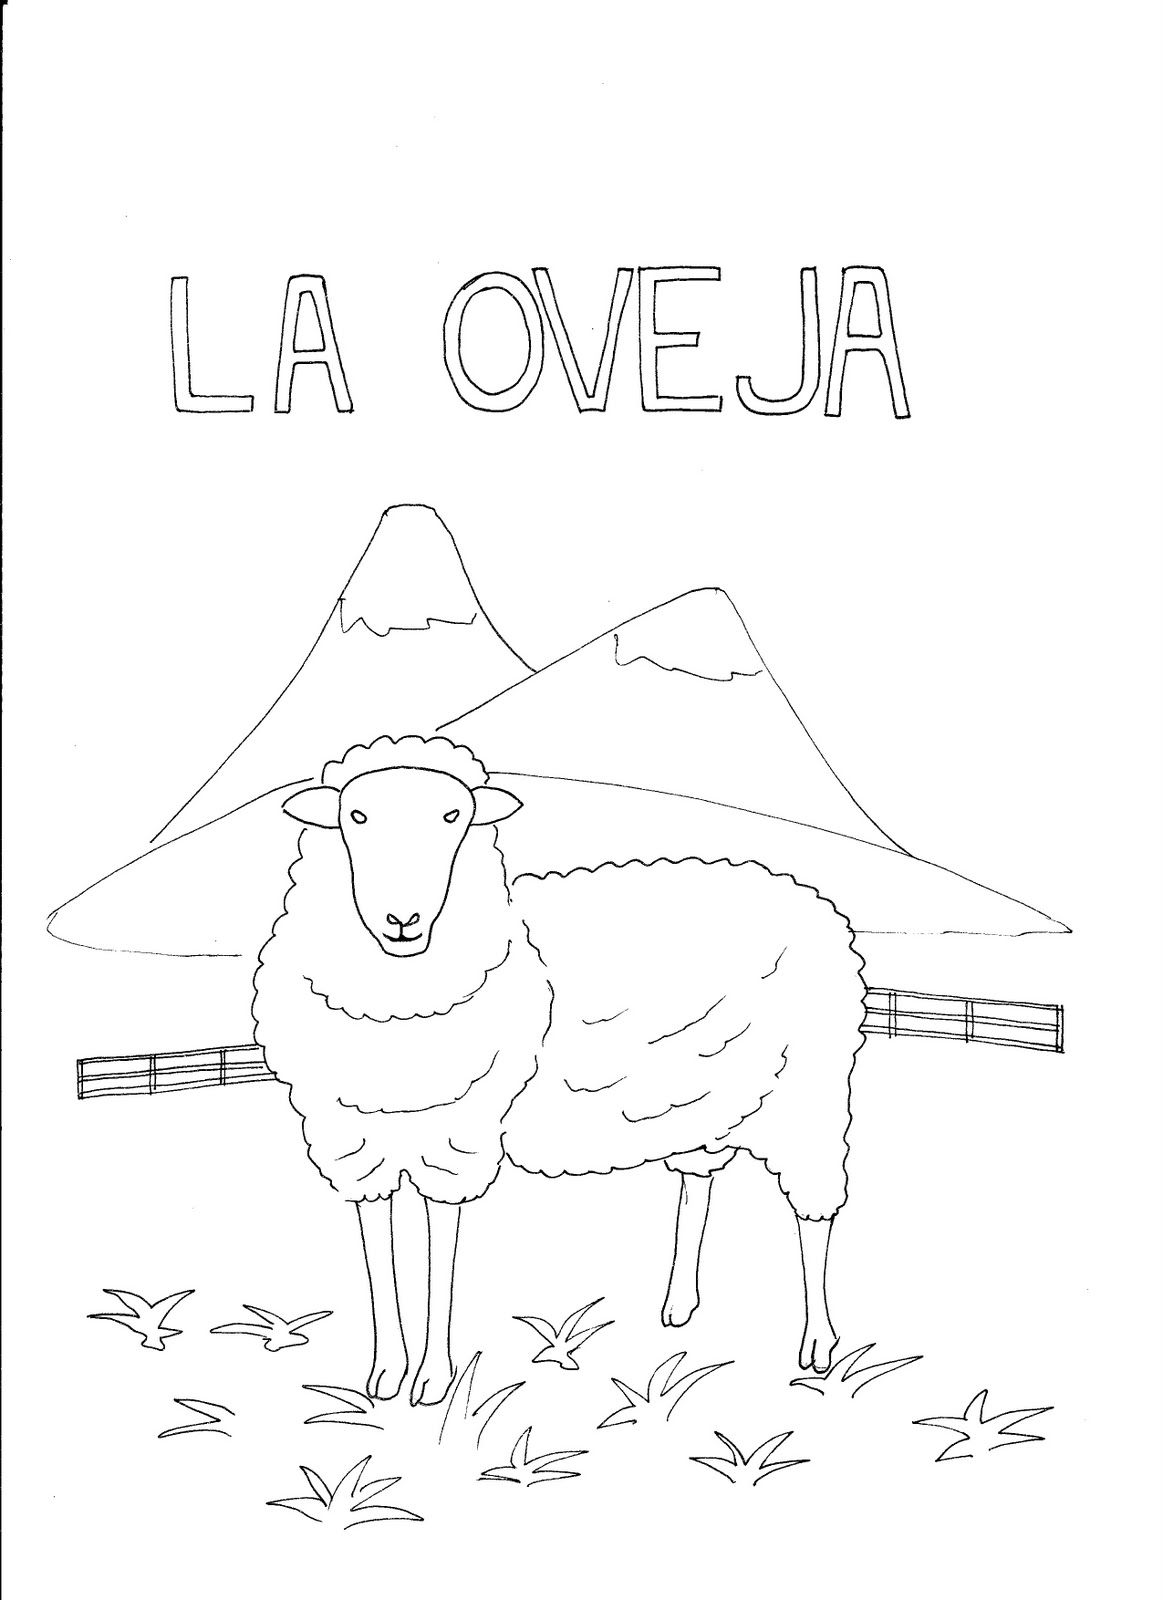 La Ropa Spanish Coloring Worksheets Sketch Coloring Page